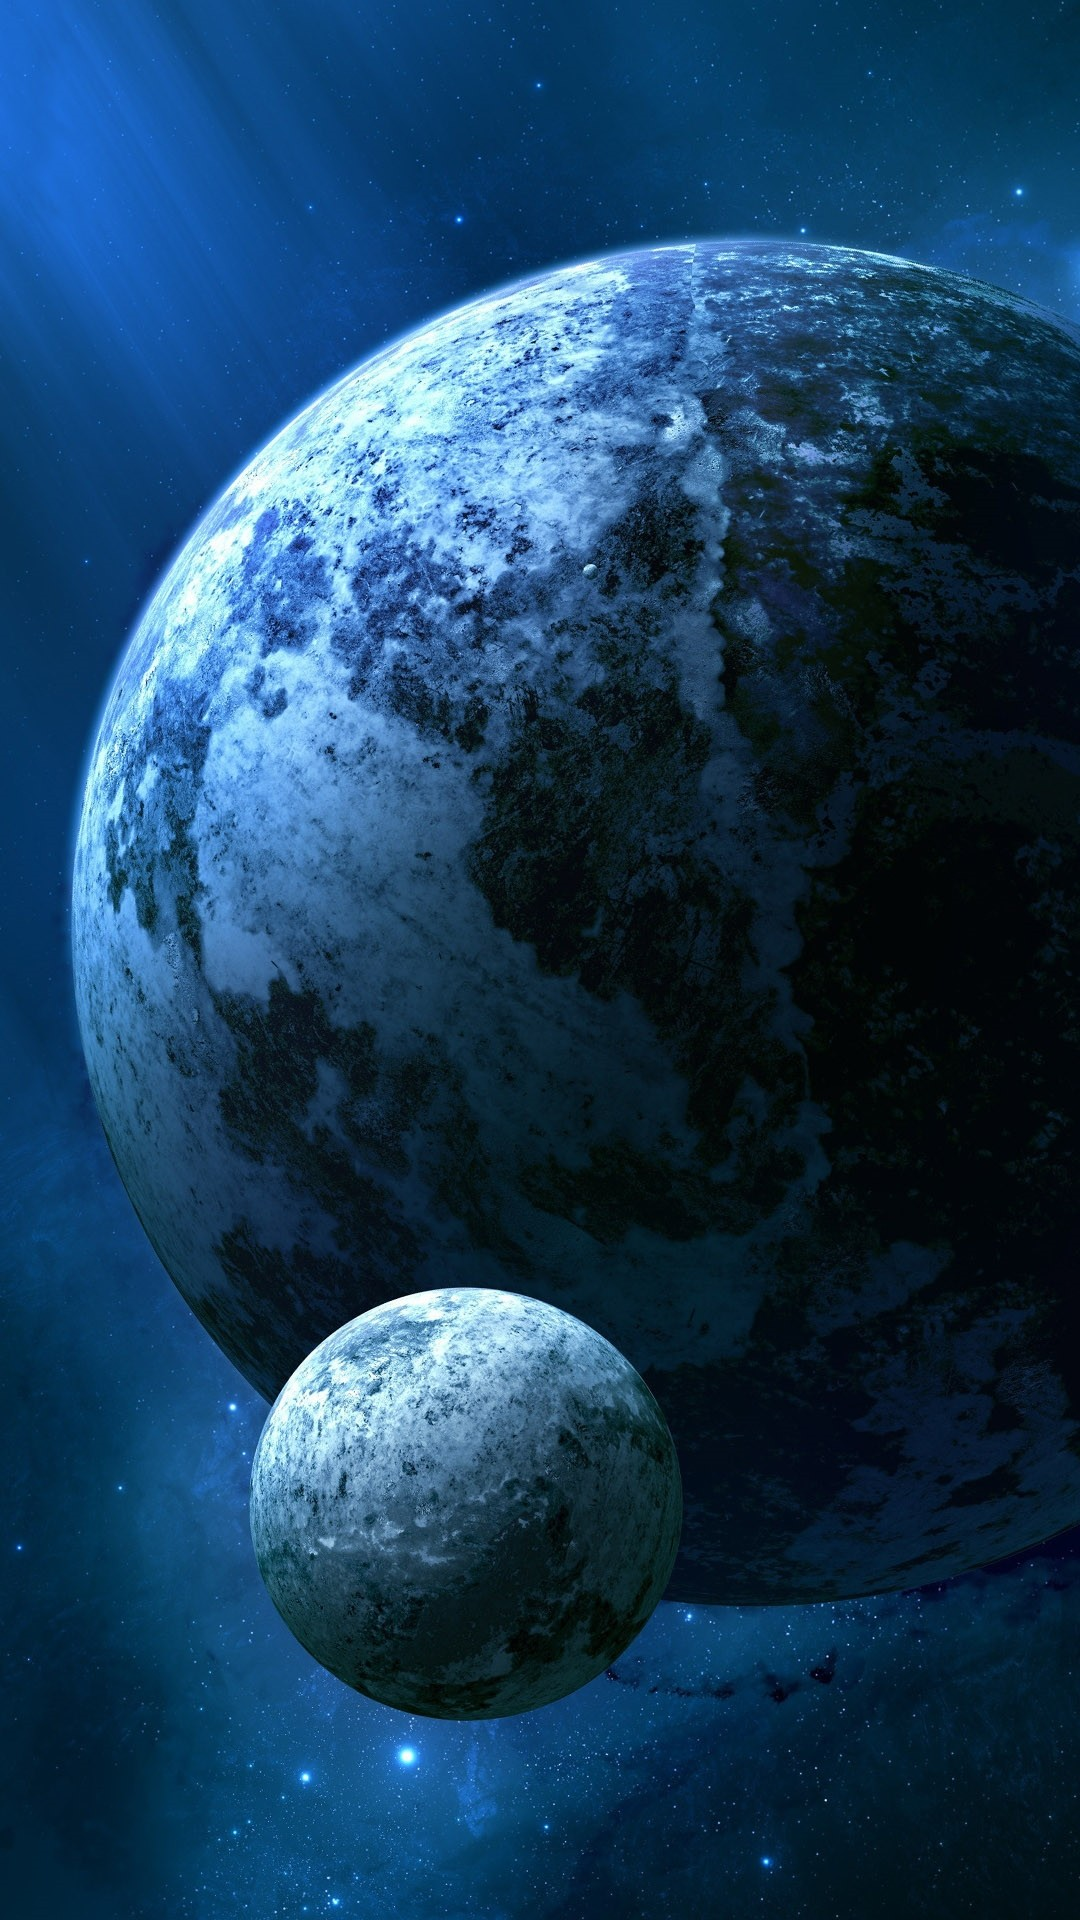 Planet iPhone Wallpapers (20+ images) - WallpaperBoat